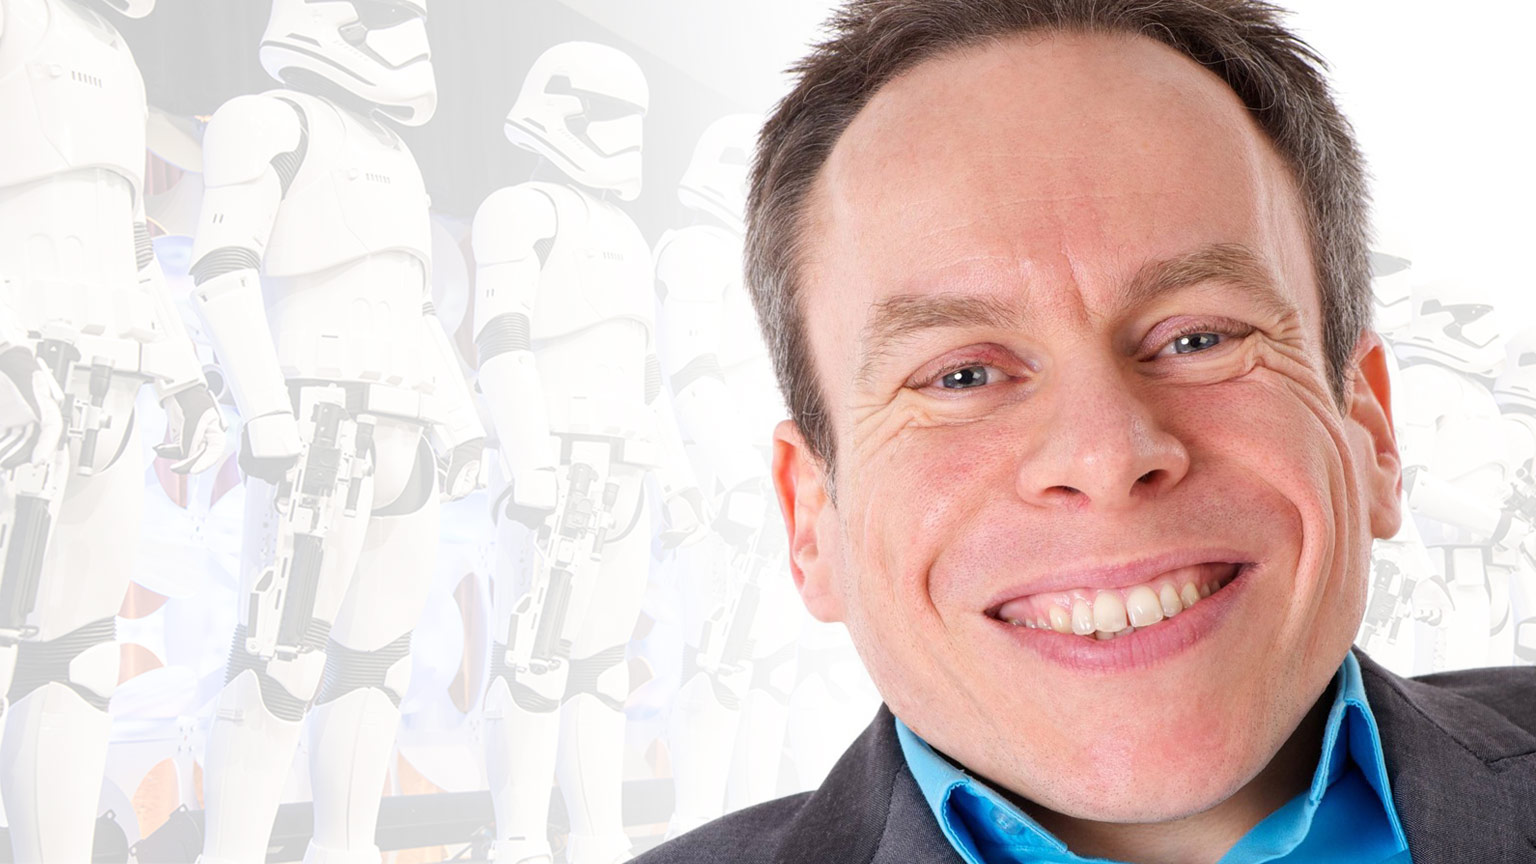 Warwick Davis to host Celebration Europe 2016!